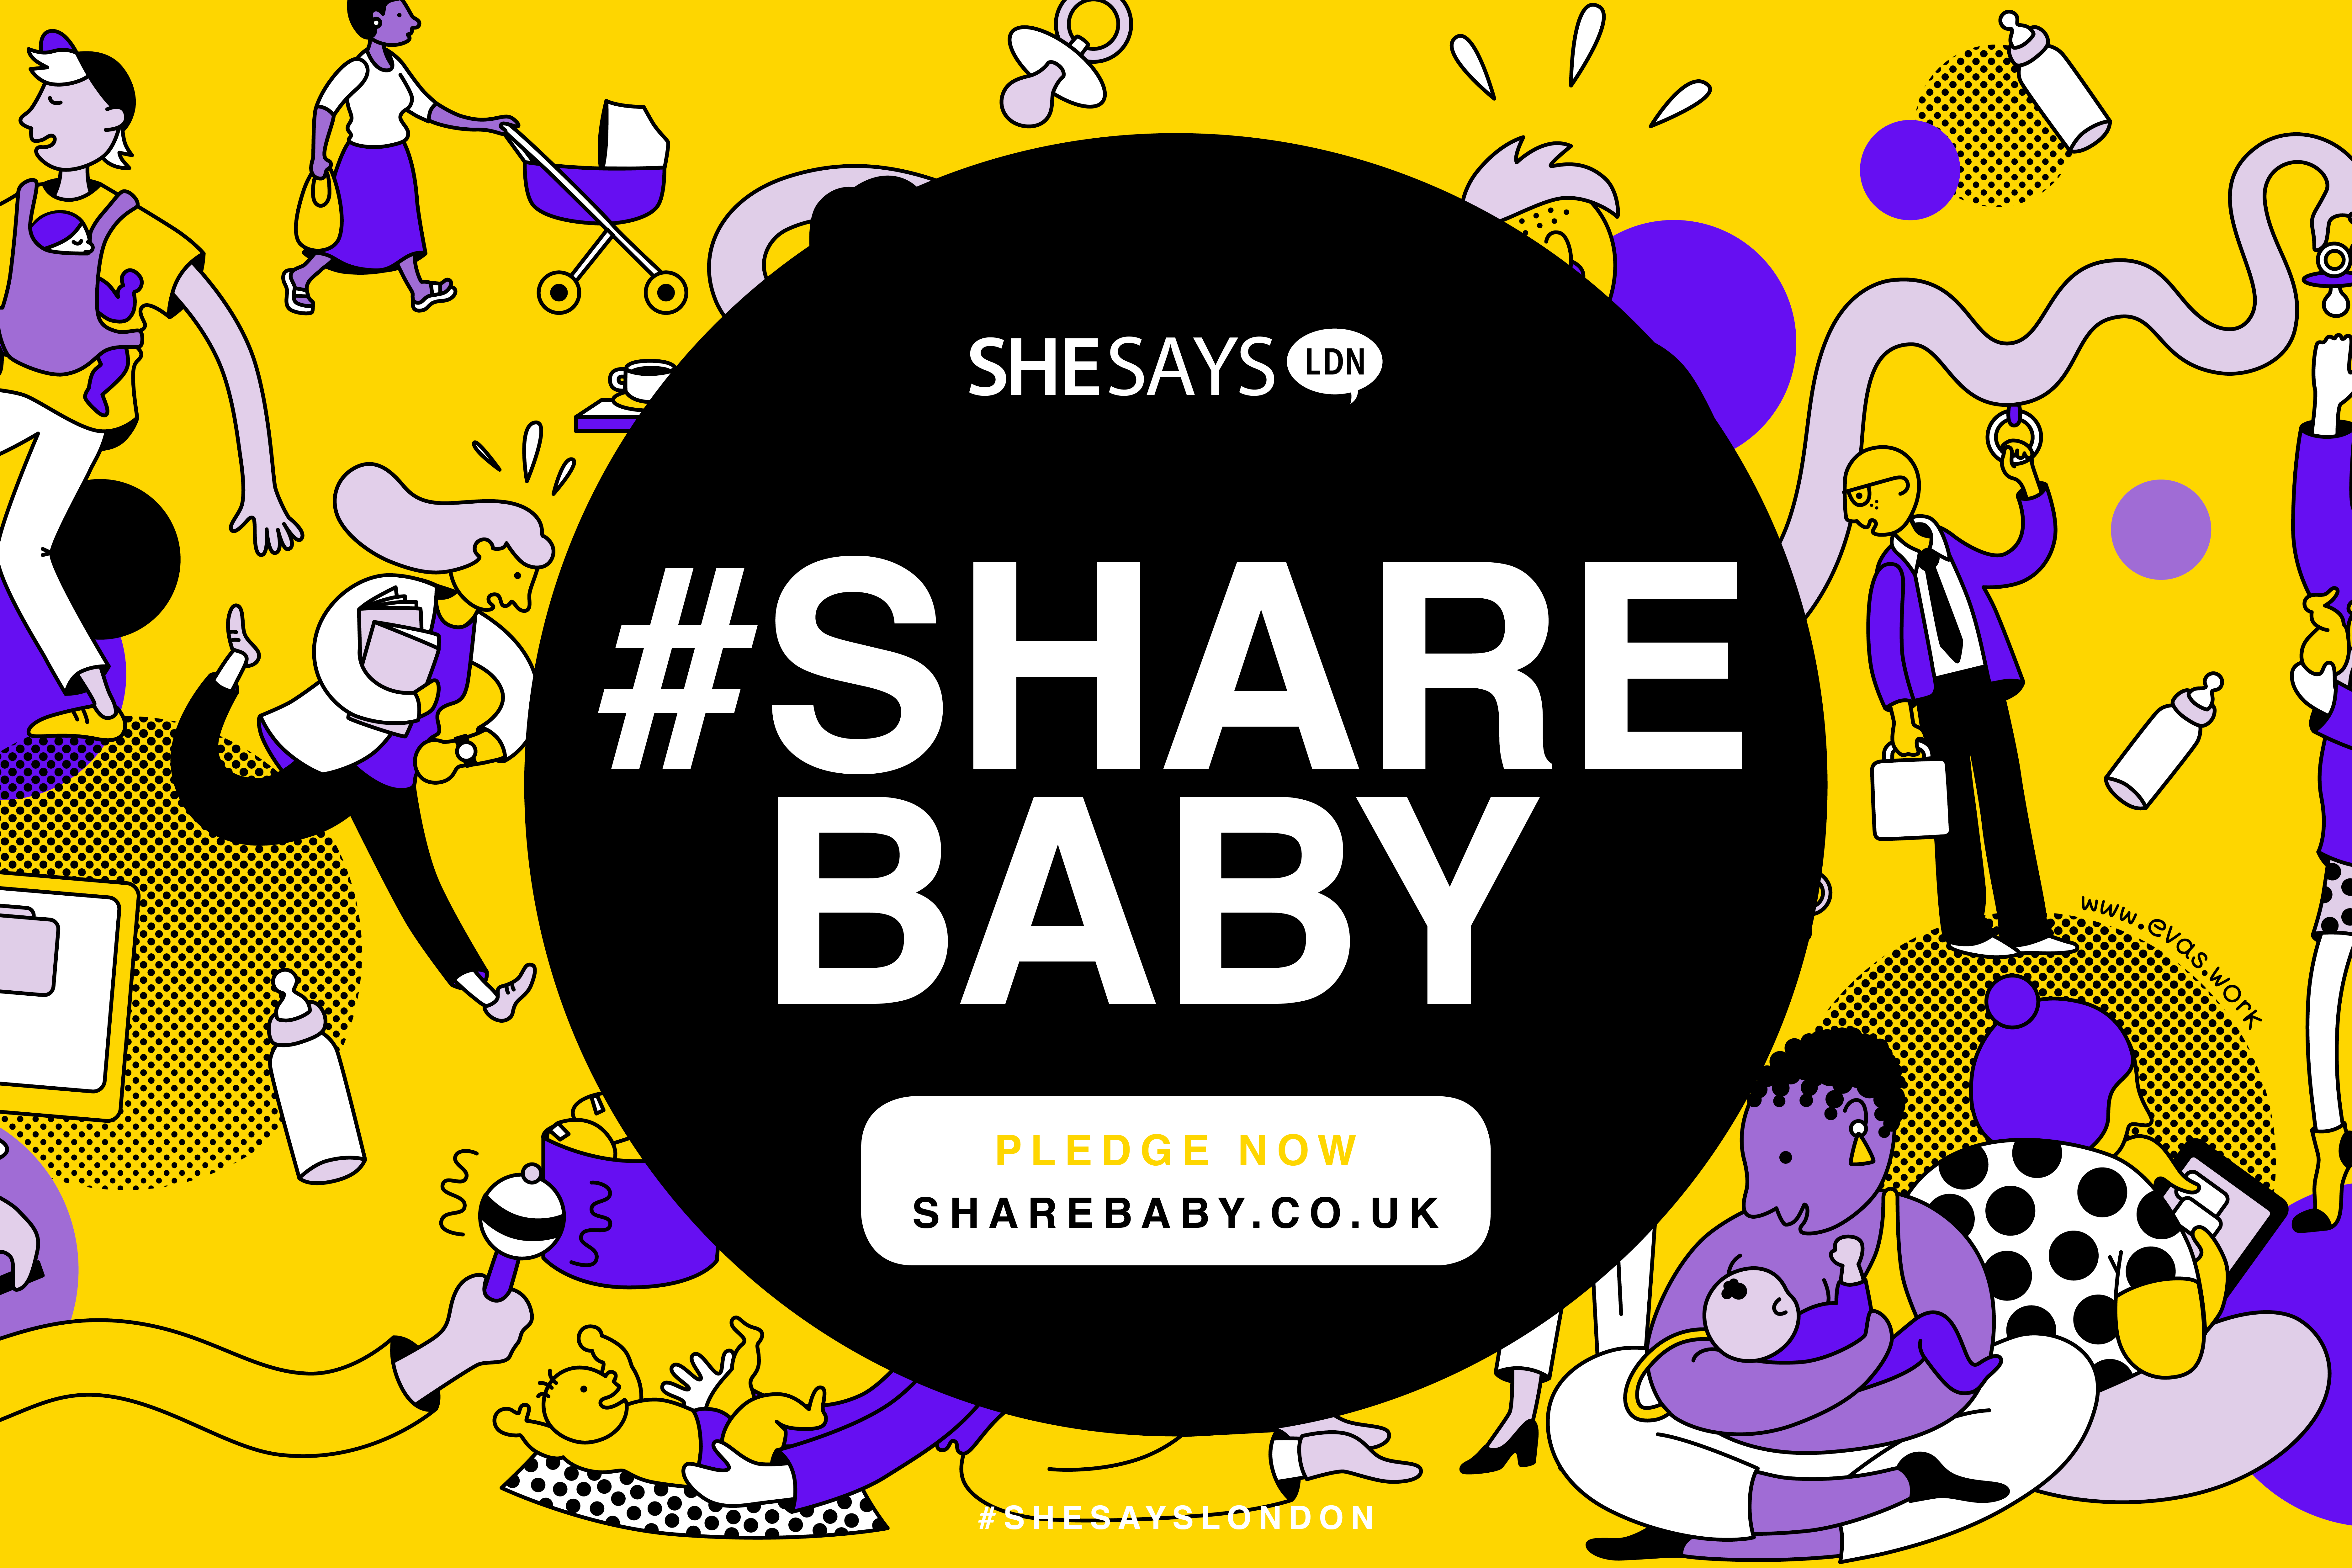 ShareBaby campaign visual illustrating various ways of parenting